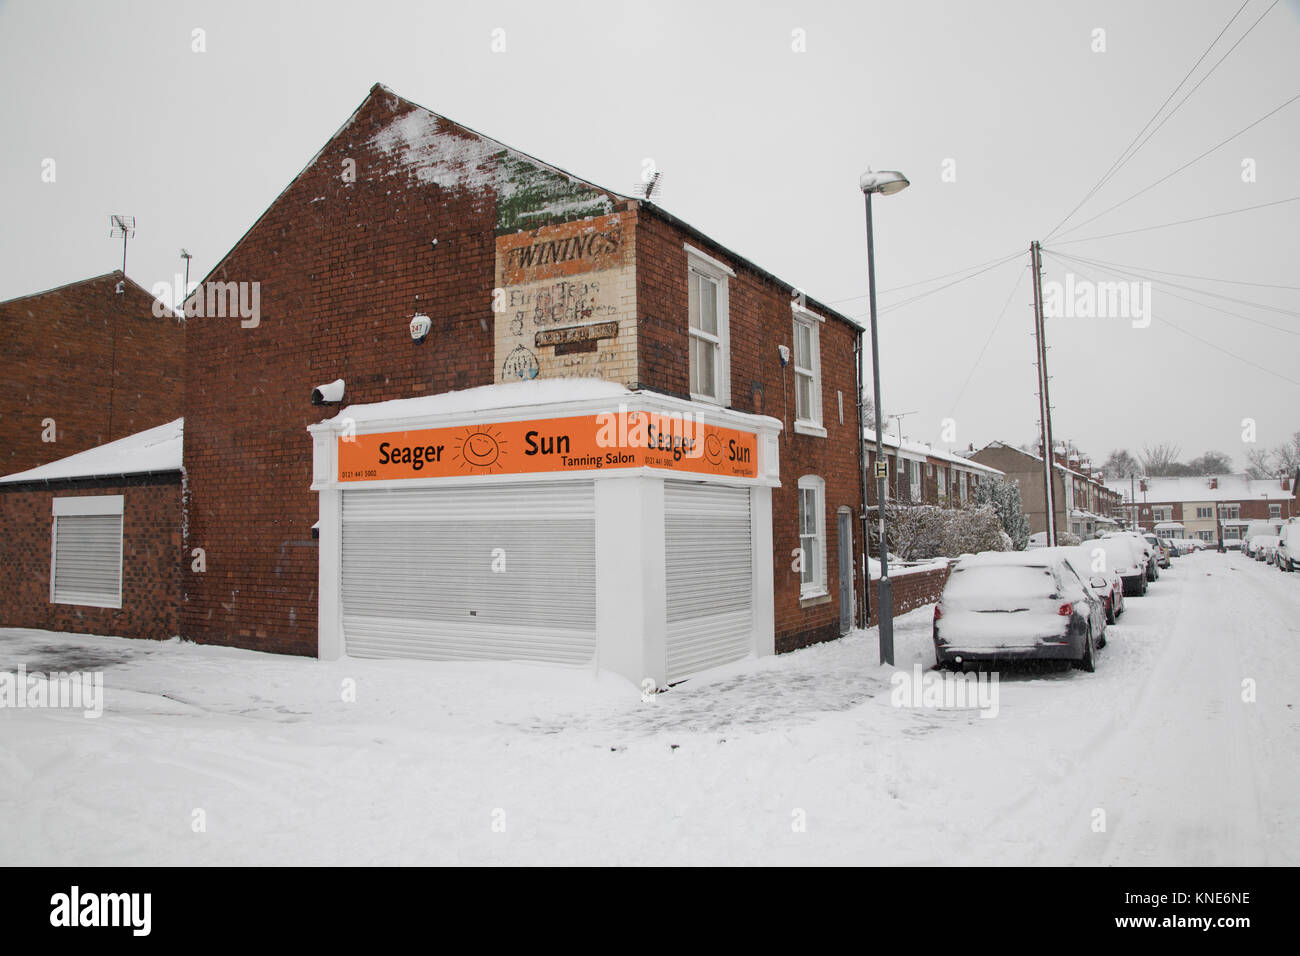 Tanning salon in Kings Heath duringheavy snow fall on Sunday 10th December 2017 in Birmingham, United Kingdom. Deep - Stock Image